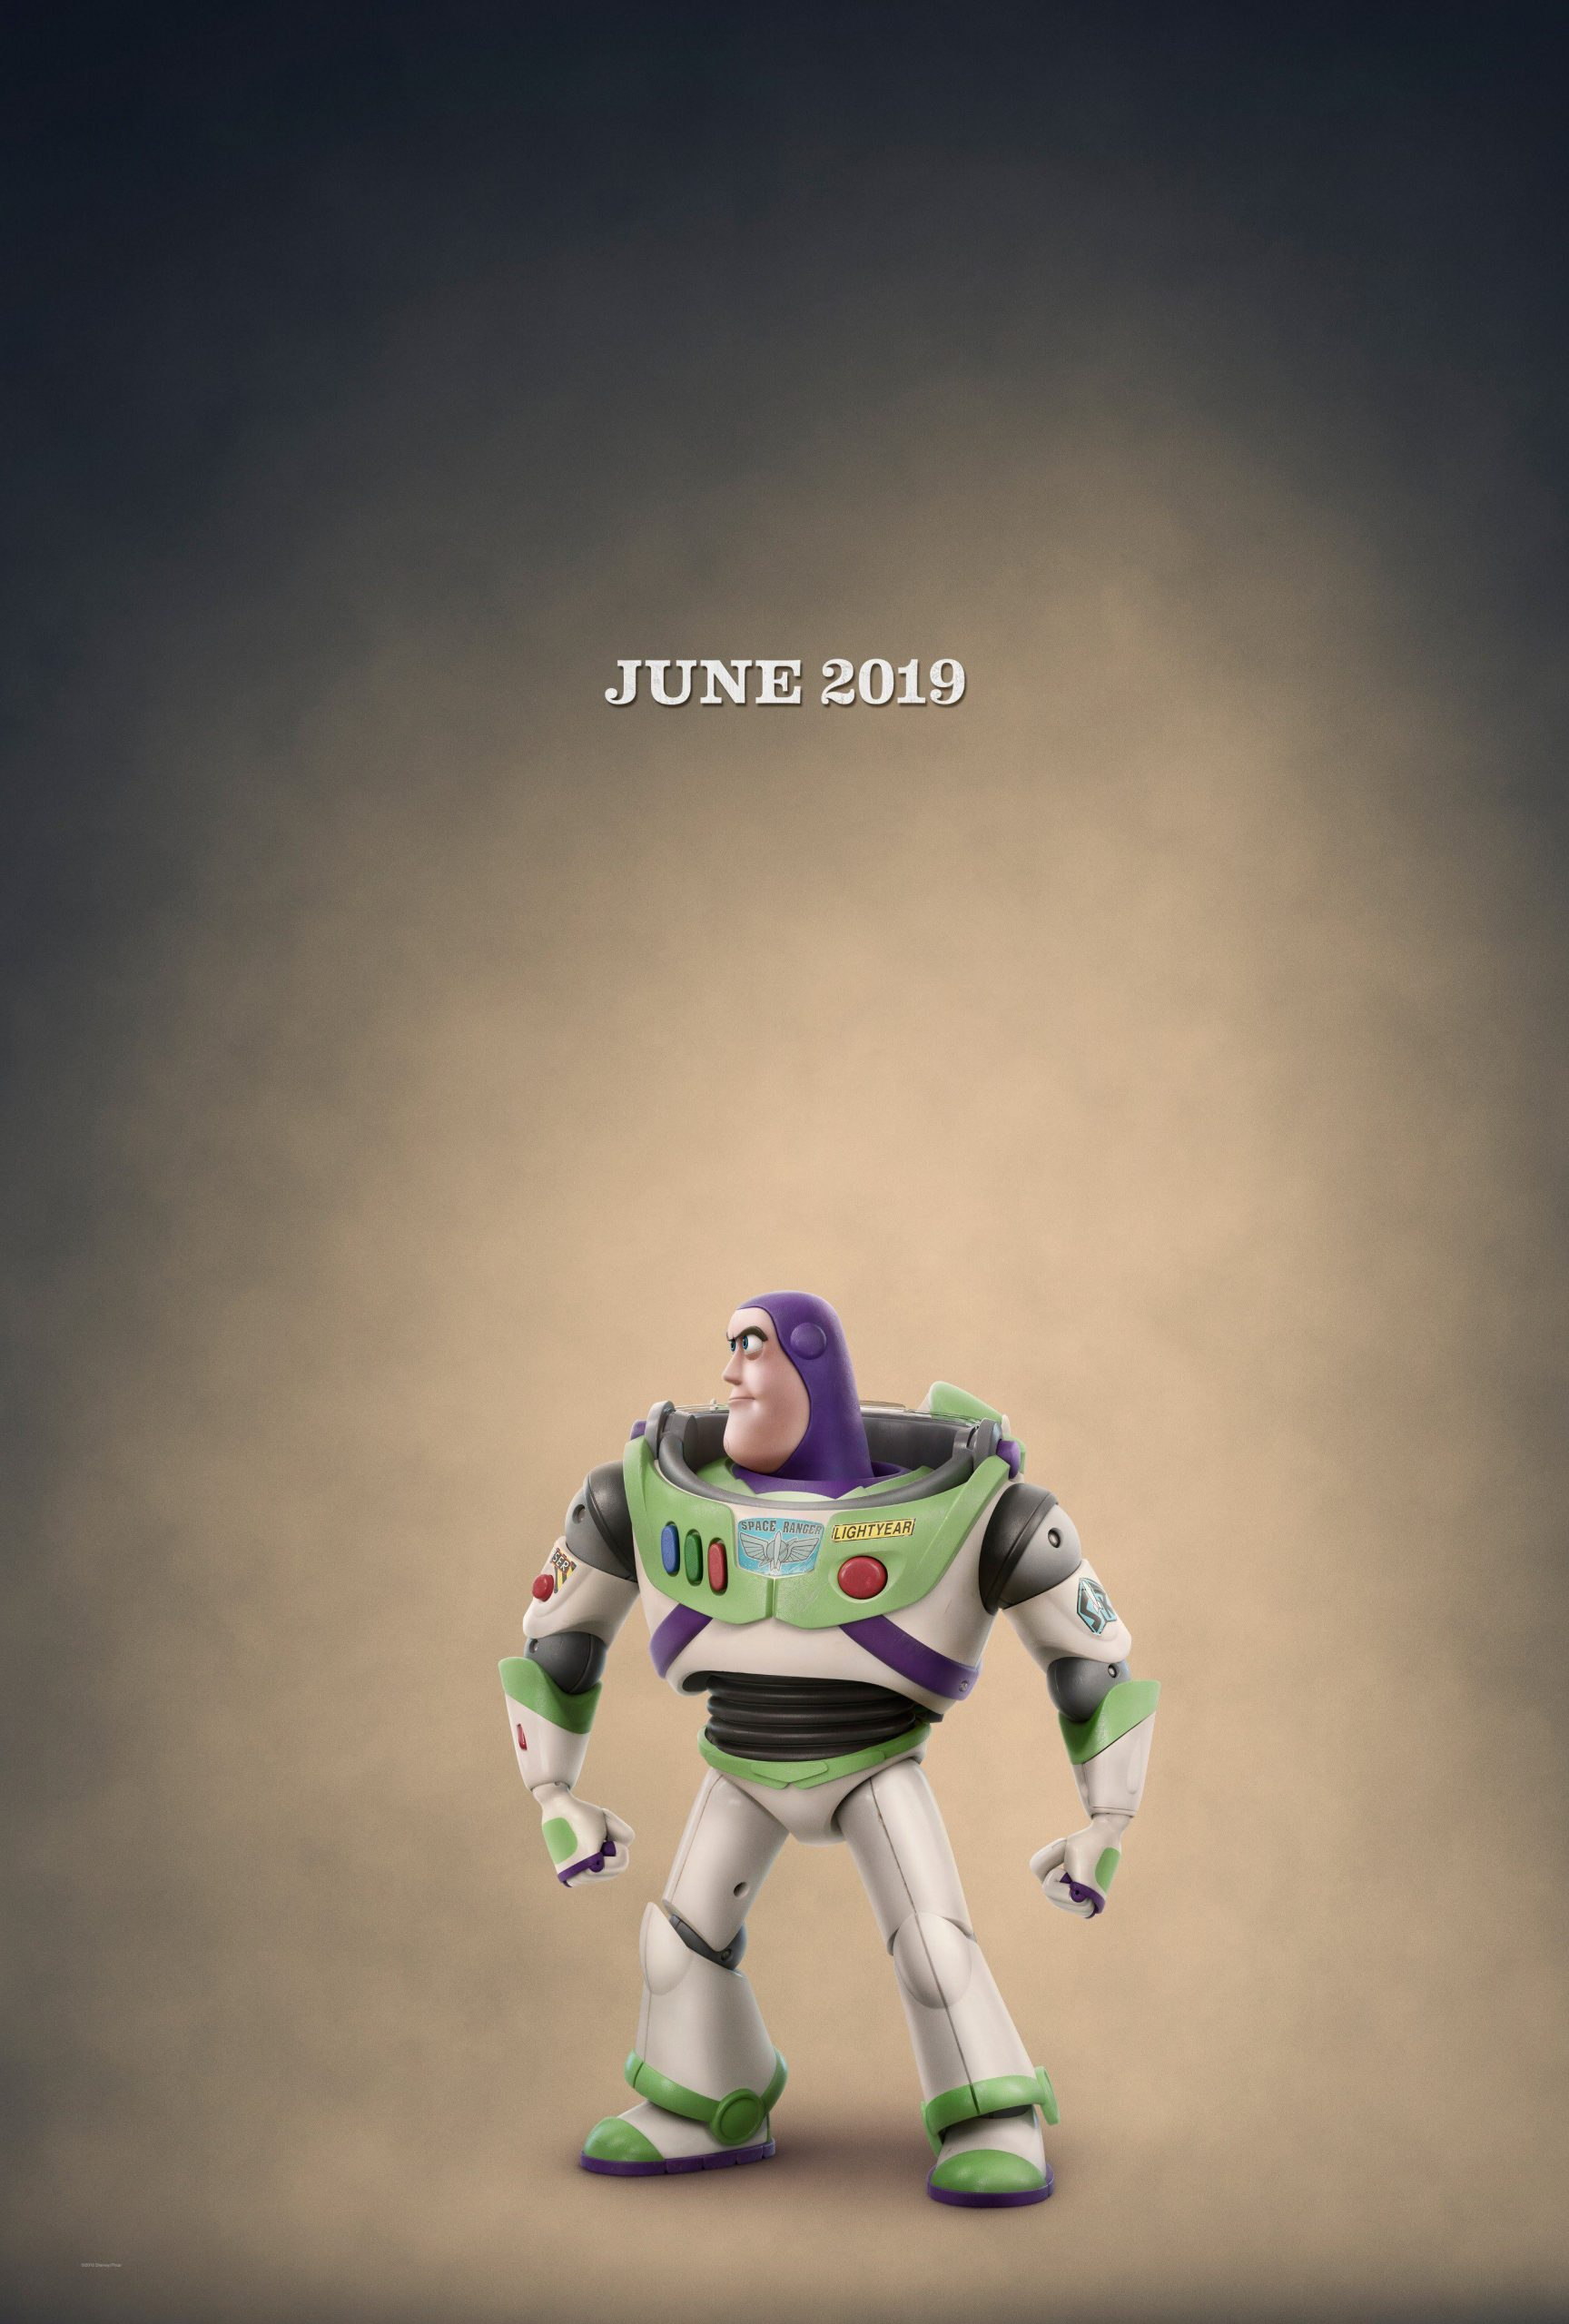 Toy Story 4 Character Posters Tim Allen is Buzz Lightyear